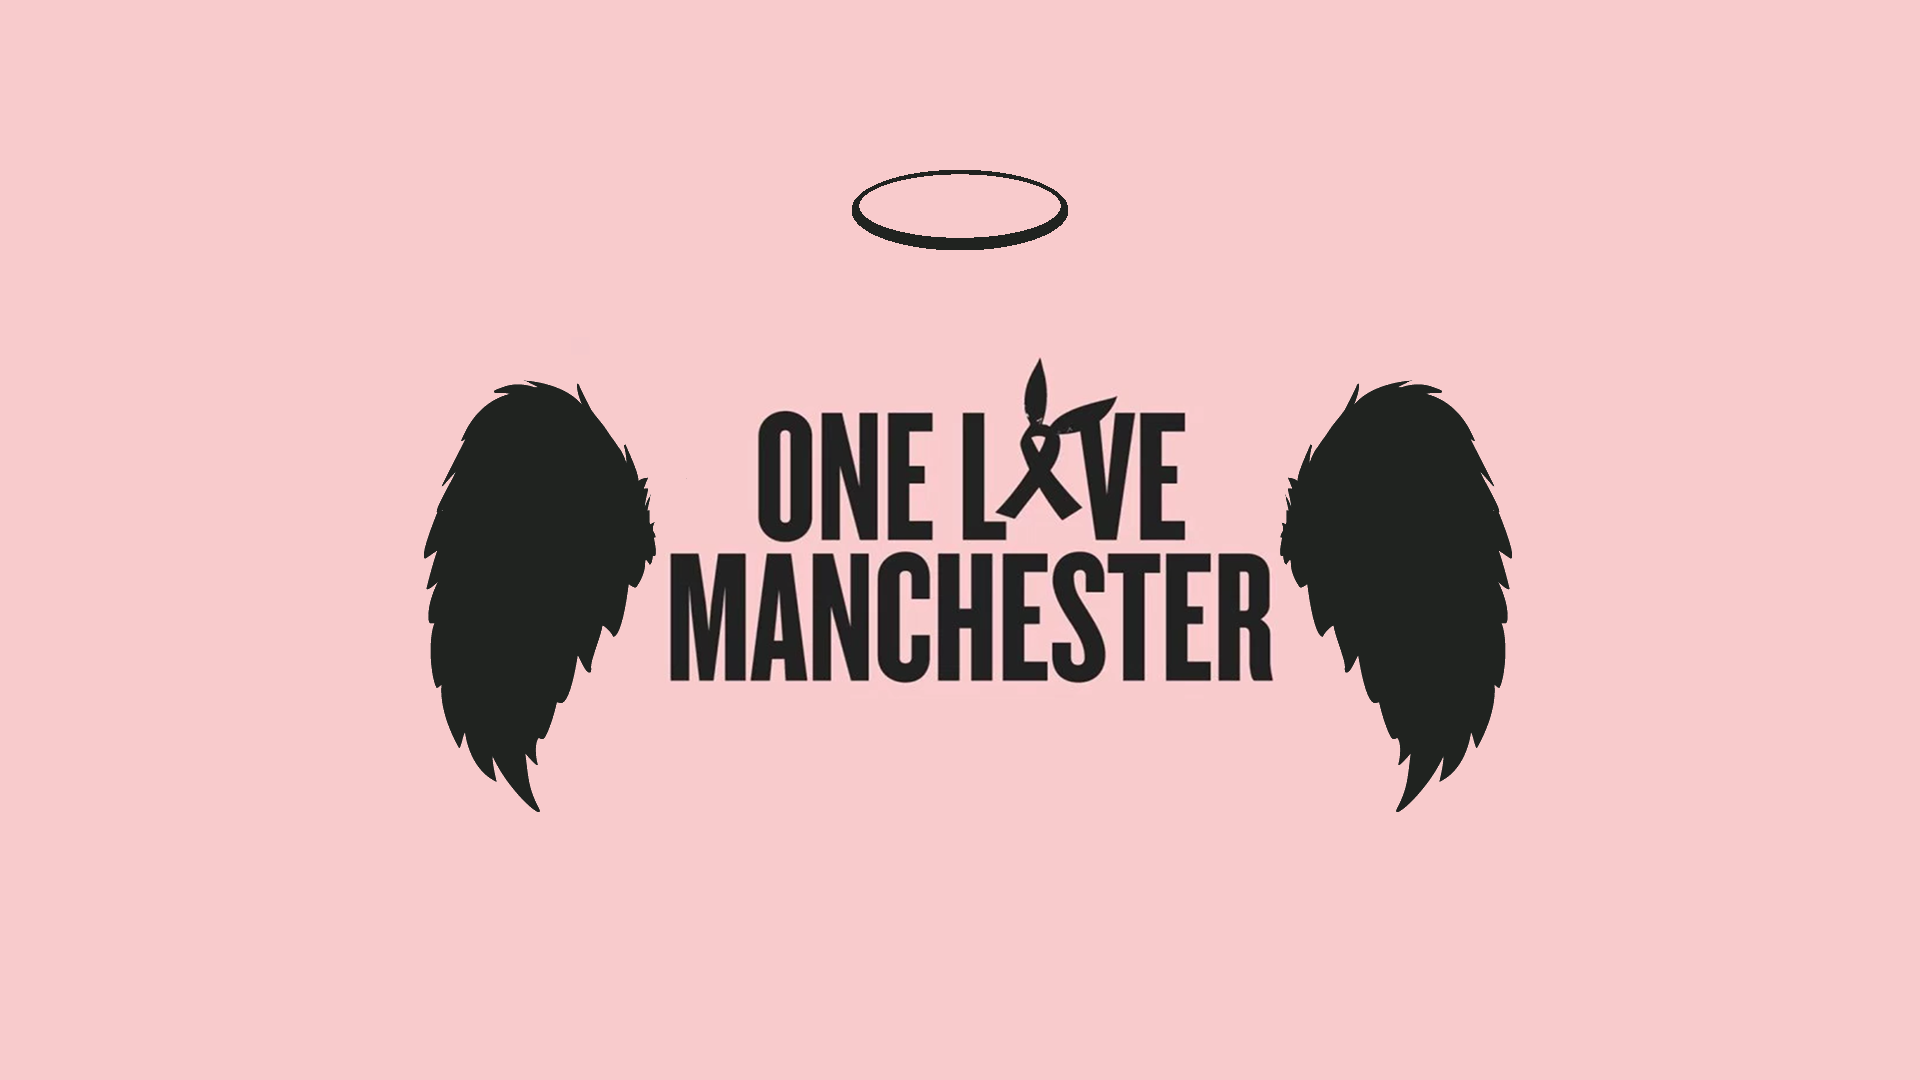 one love manchesterwombalar on deviantart